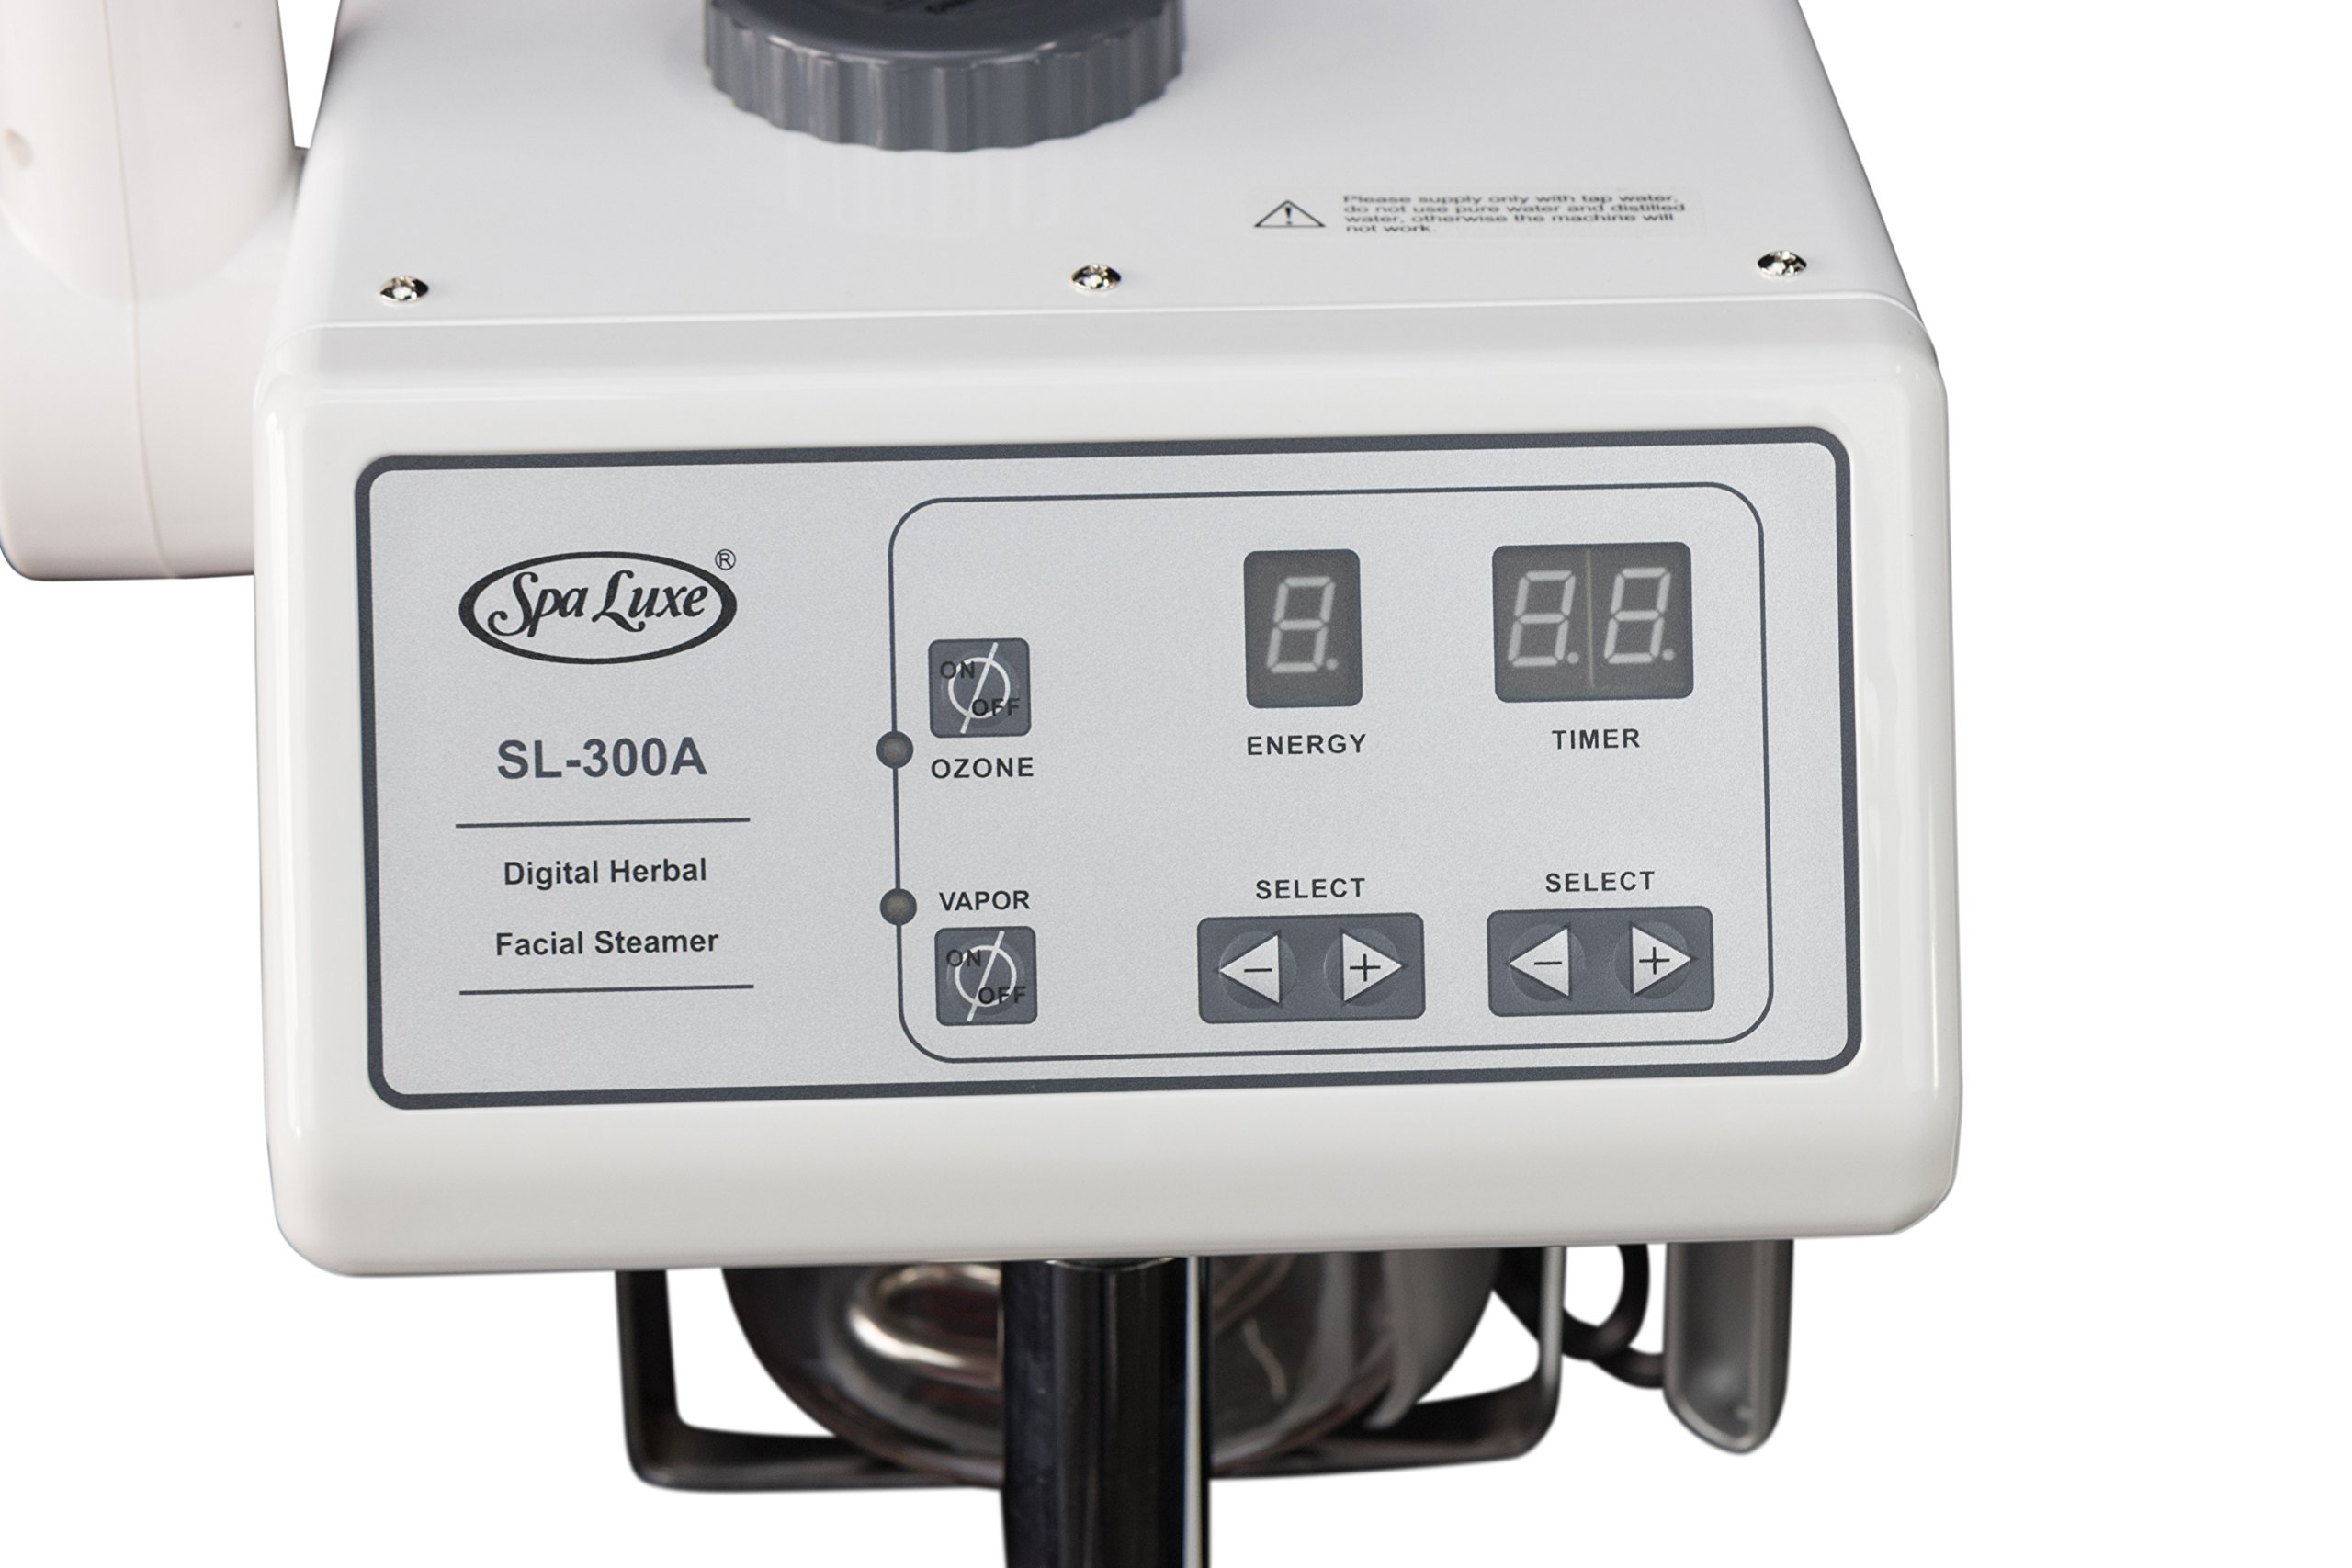 2 in 1 Digital Facial Steamer and LED Magnifying Lamp Combo - NEW by Spa Luxe (Image #2)